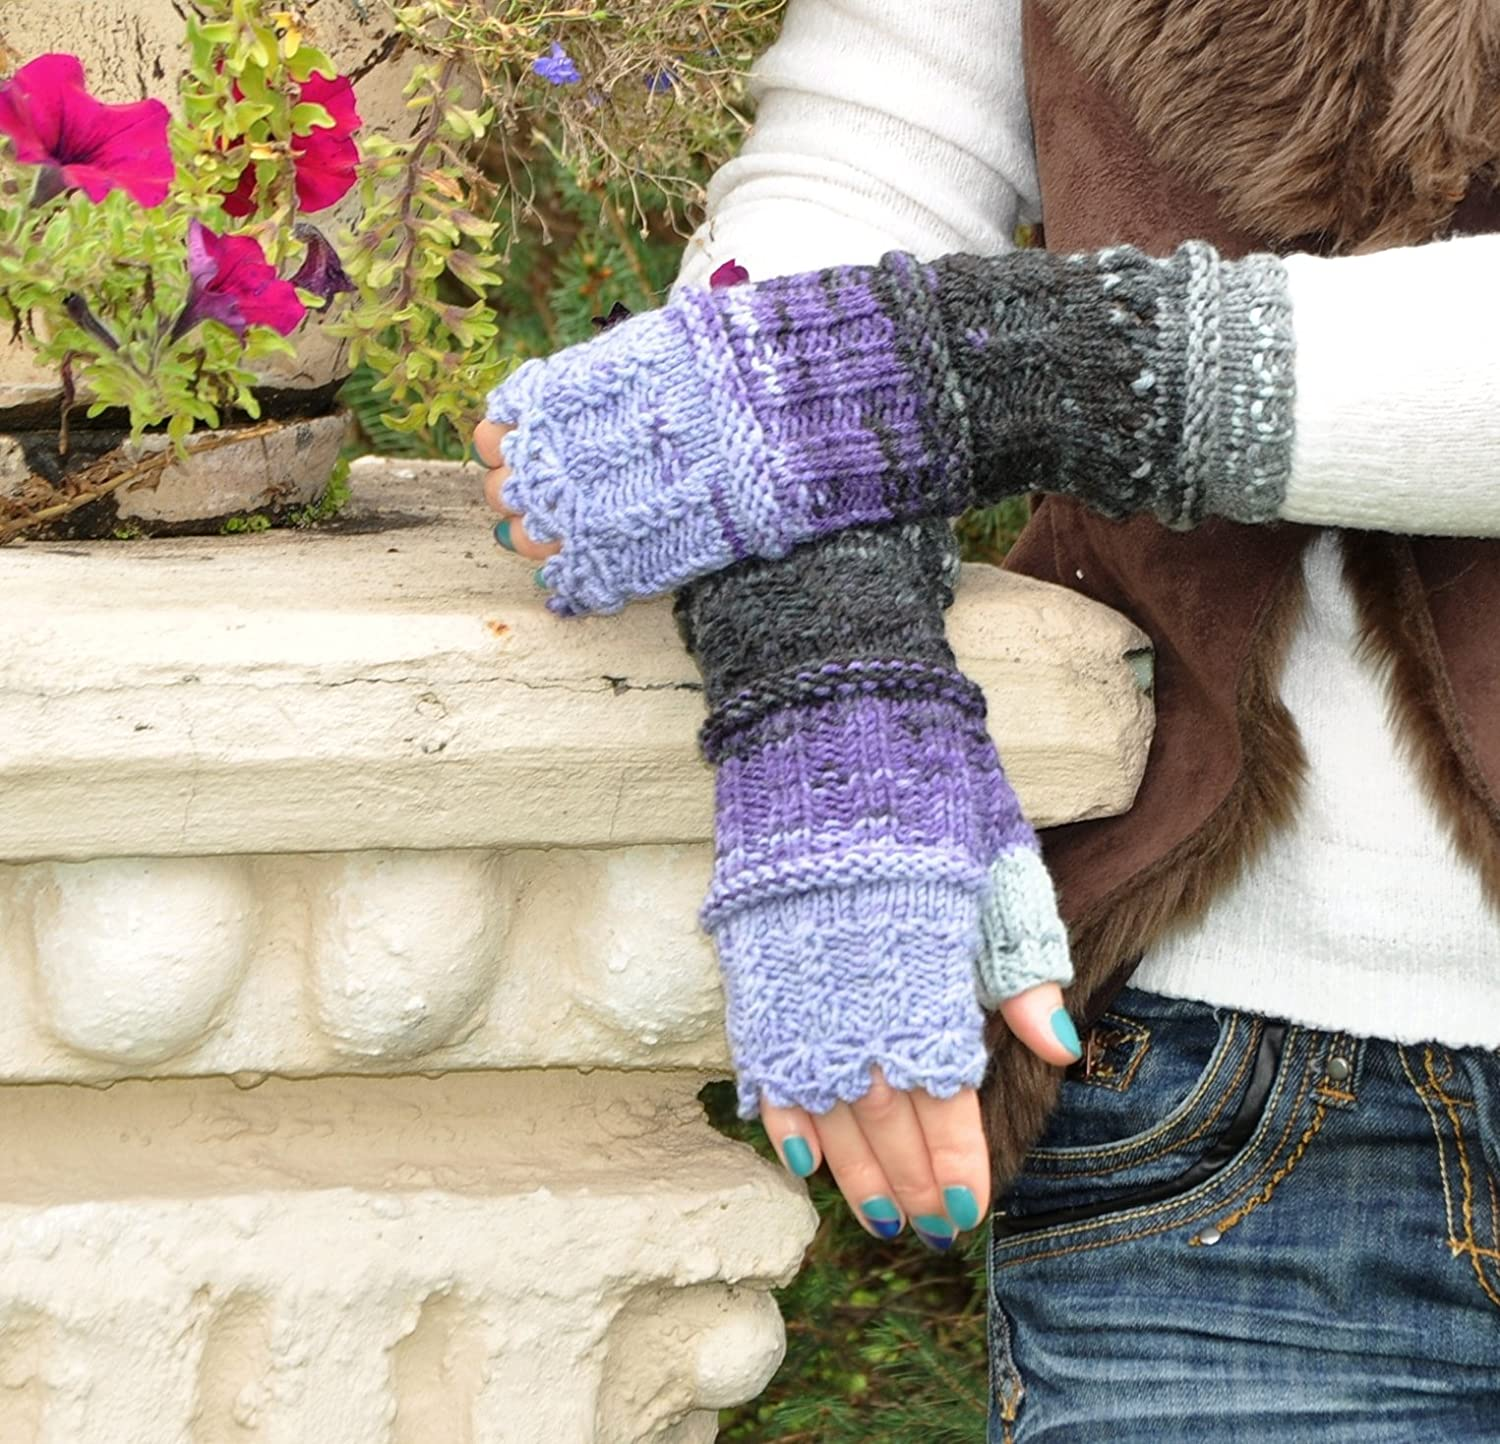 Long Cable Mittens, Fingerless Gloves, Knitted Mittens Thumb Hole Gloves, Crochet Winter Mittens, Sweet Girls Women Mittens, Hand Wrist Winter Warmer Knitted